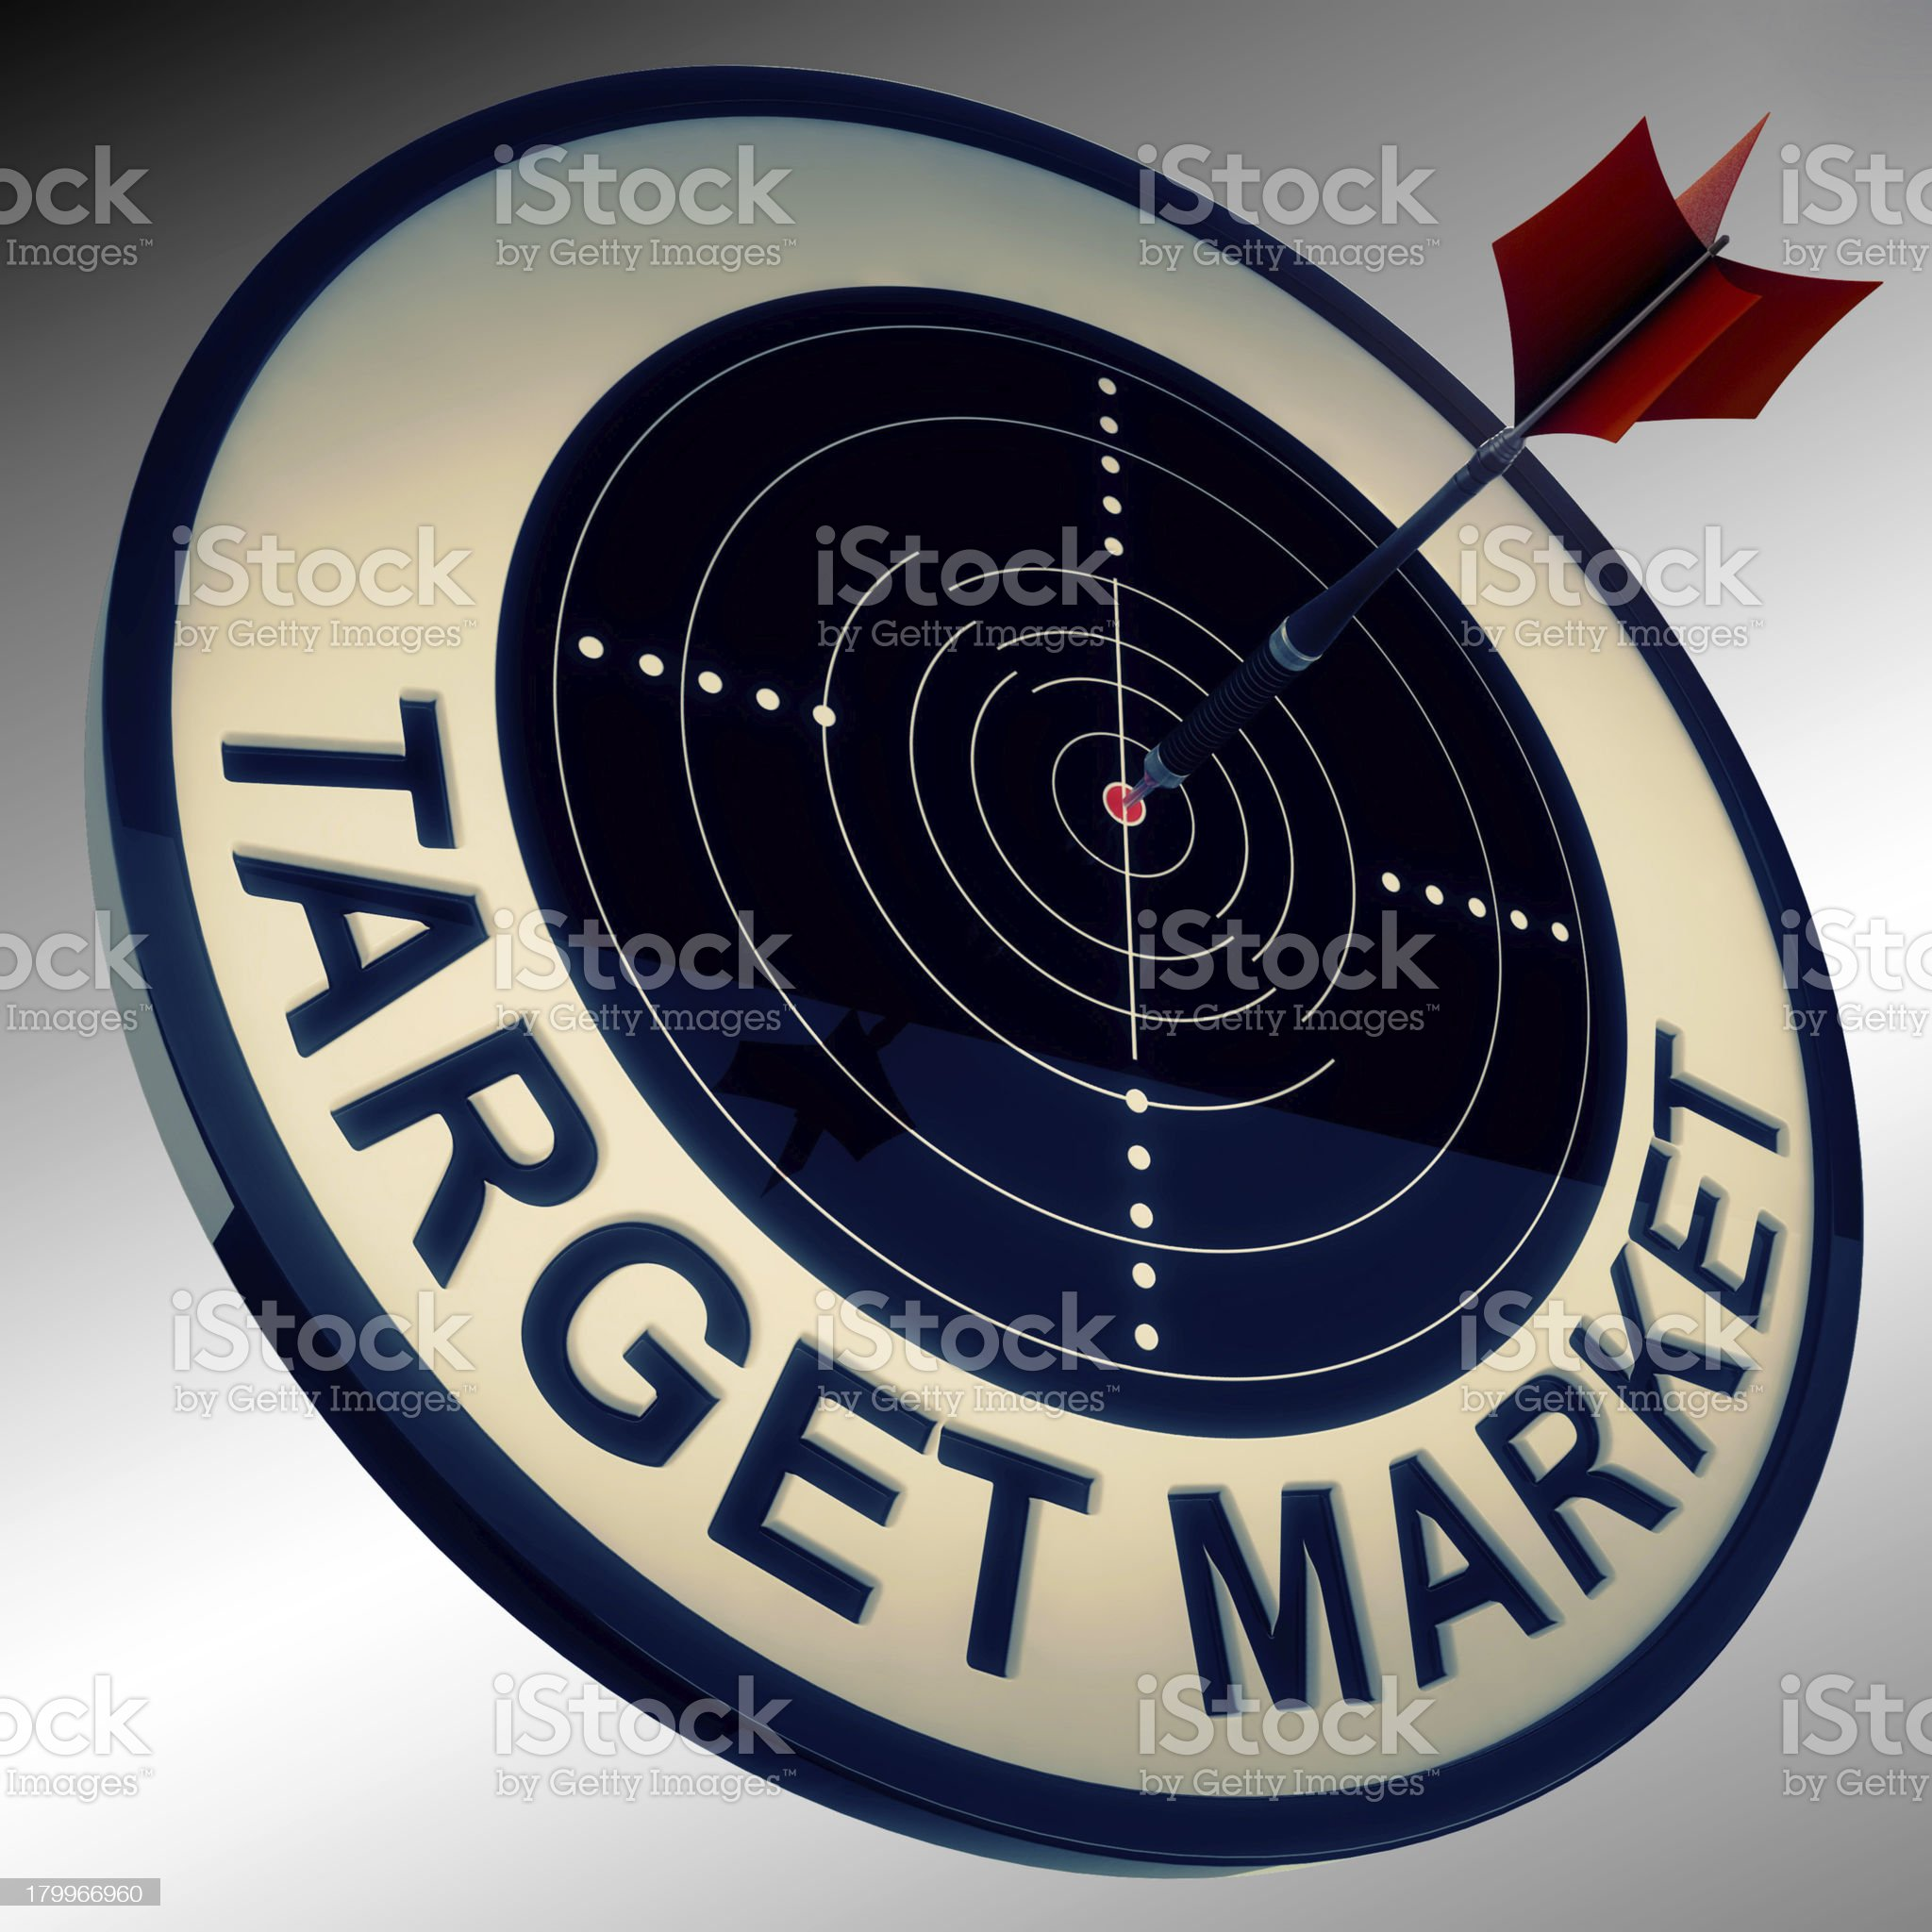 Target Market Means Aiming Strategy At Consumers royalty-free stock photo